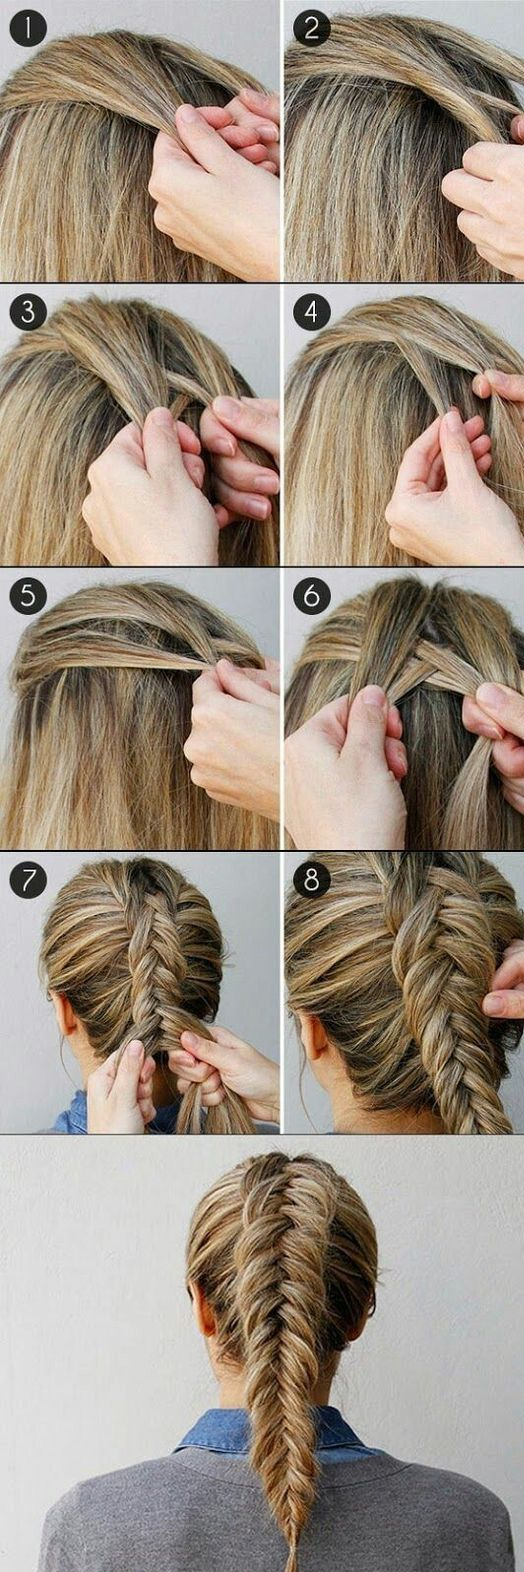 easy hairstyles to wear to the beach or pool this summer